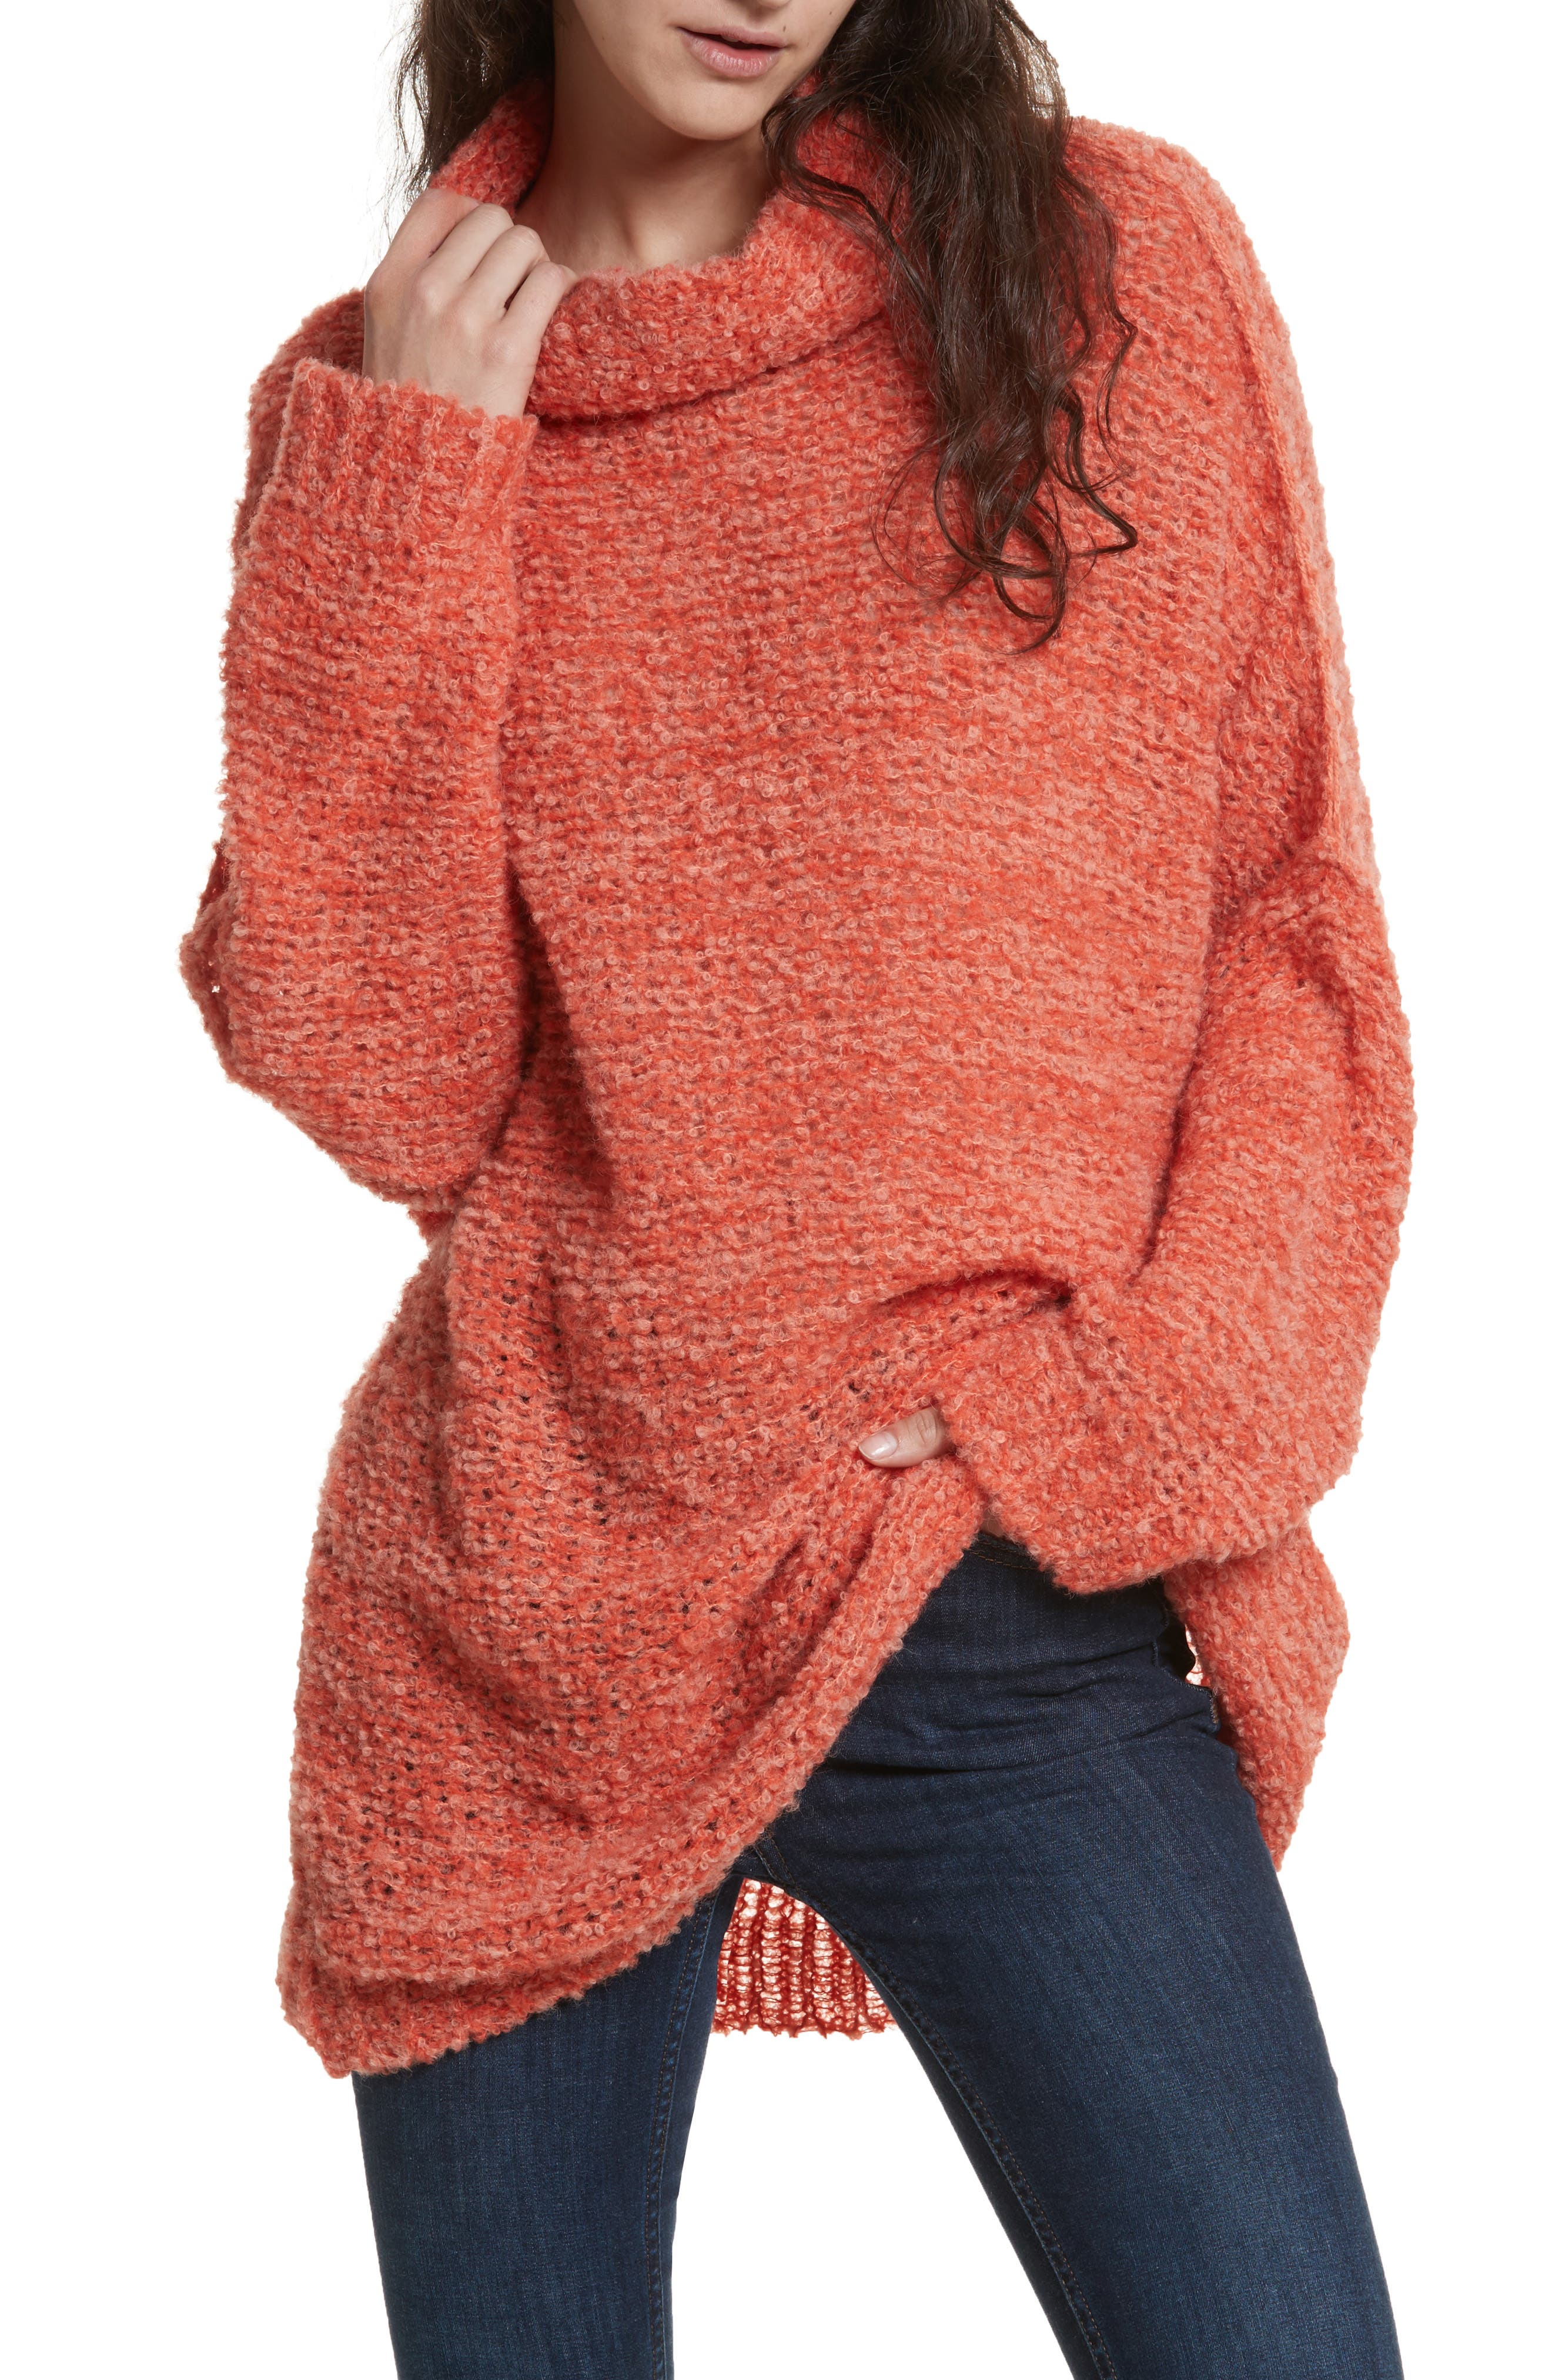 'She's All That' Knit Turtleneck Sweater,                             Main thumbnail 1, color,                             800